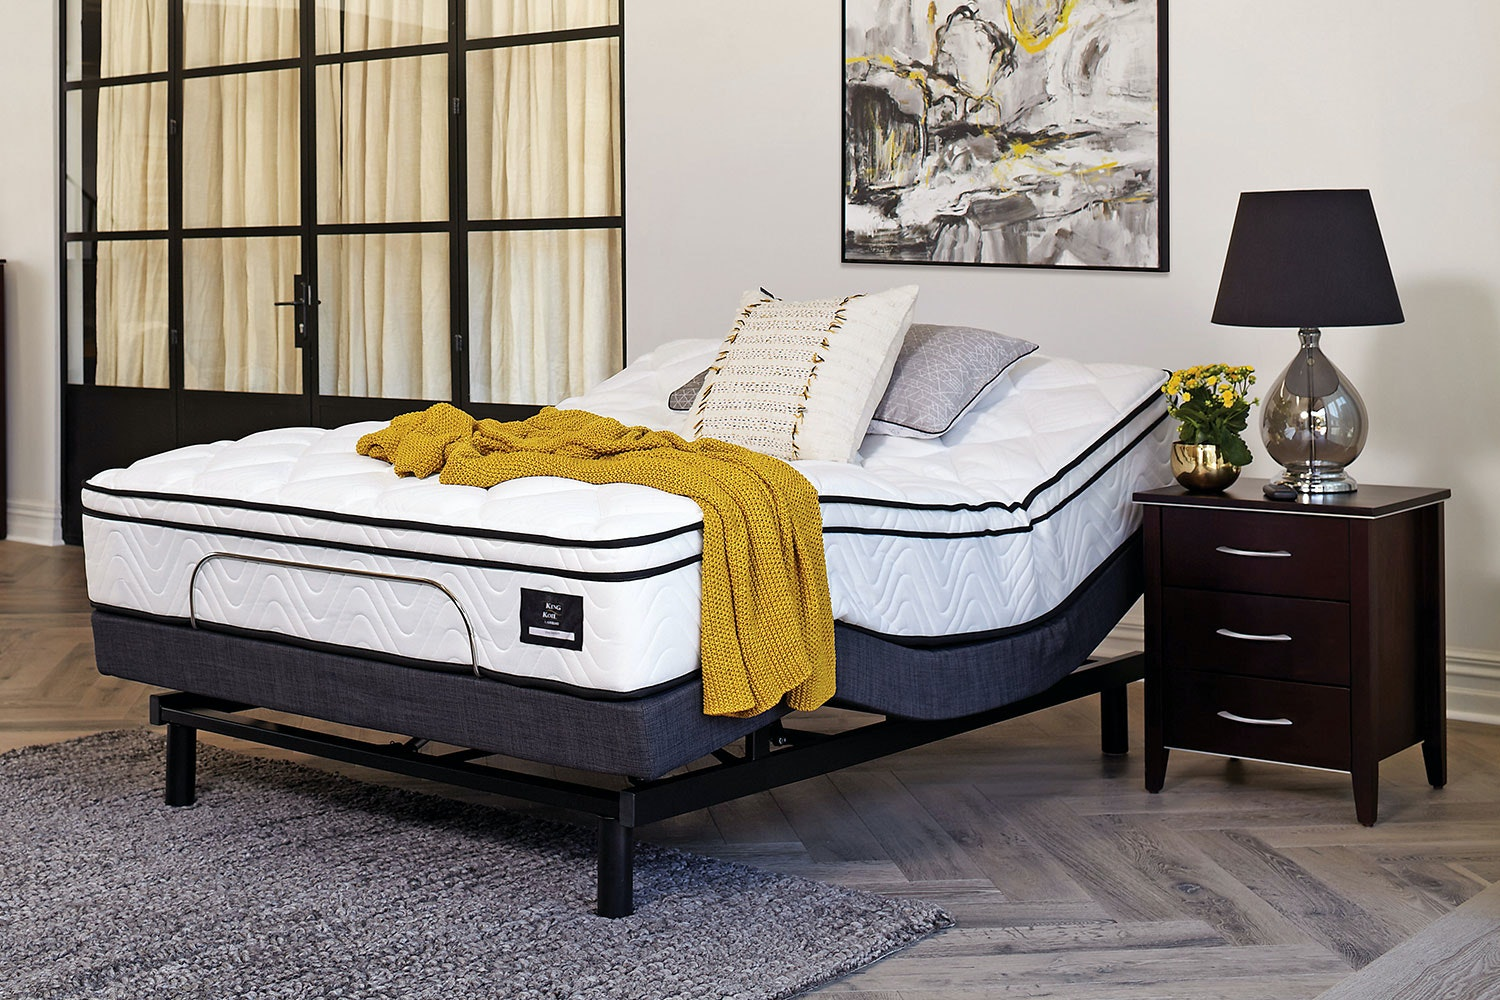 King Koil Viva Medium Queen Mattress with Lifestyle Adjustable Base by Tempur